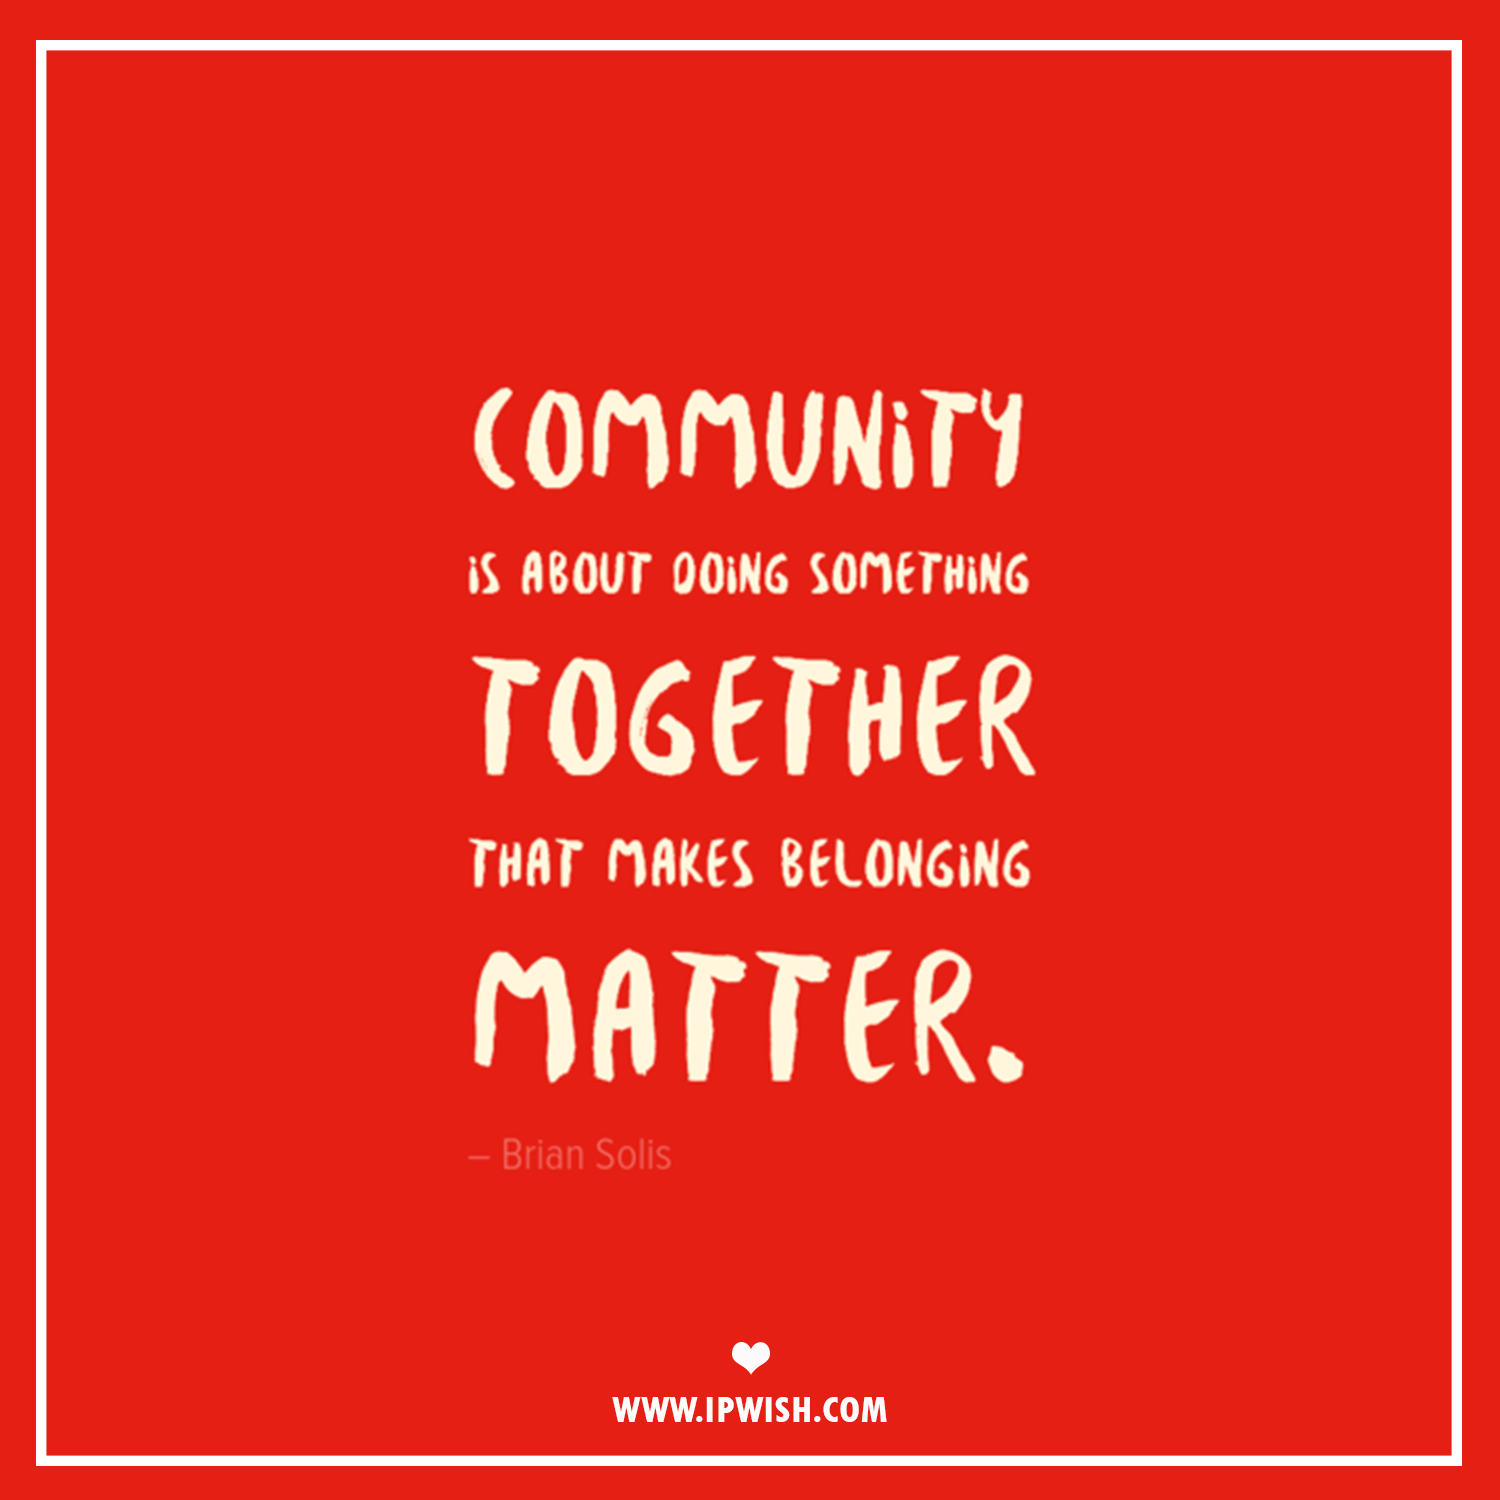 """Community"""" By Brian Solis (With images) 